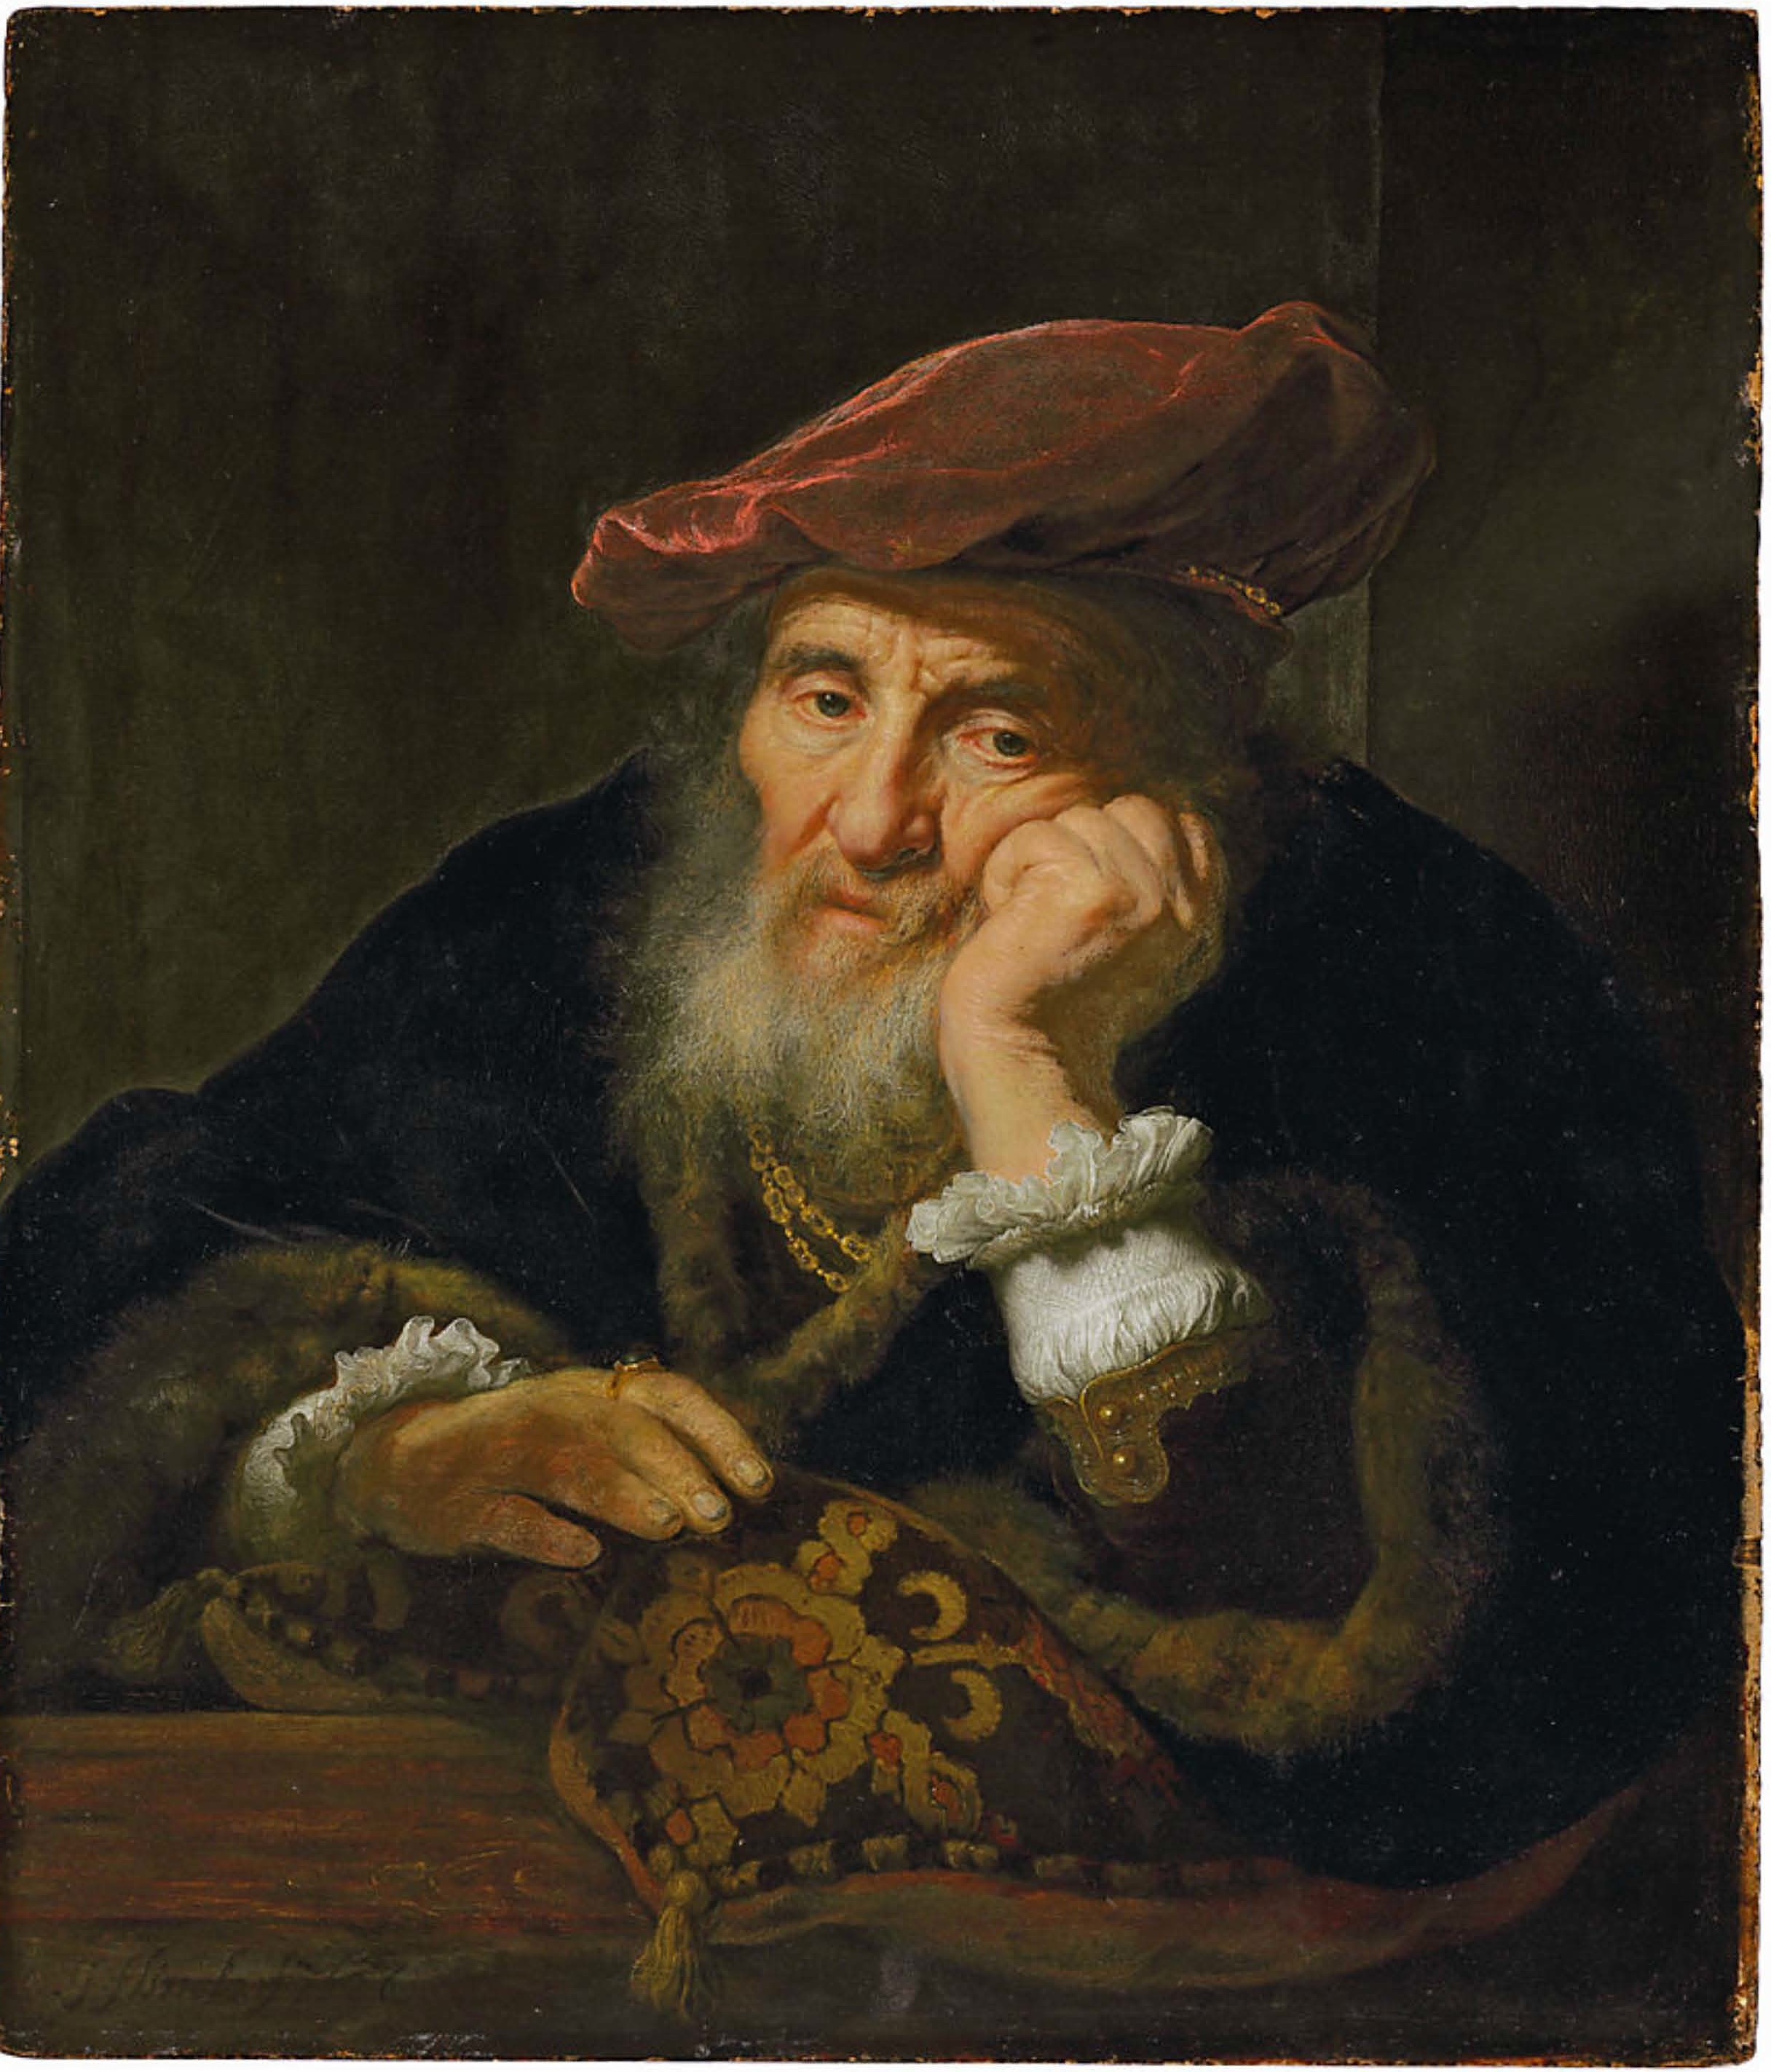 Going dutch … old masters at auction nord on art